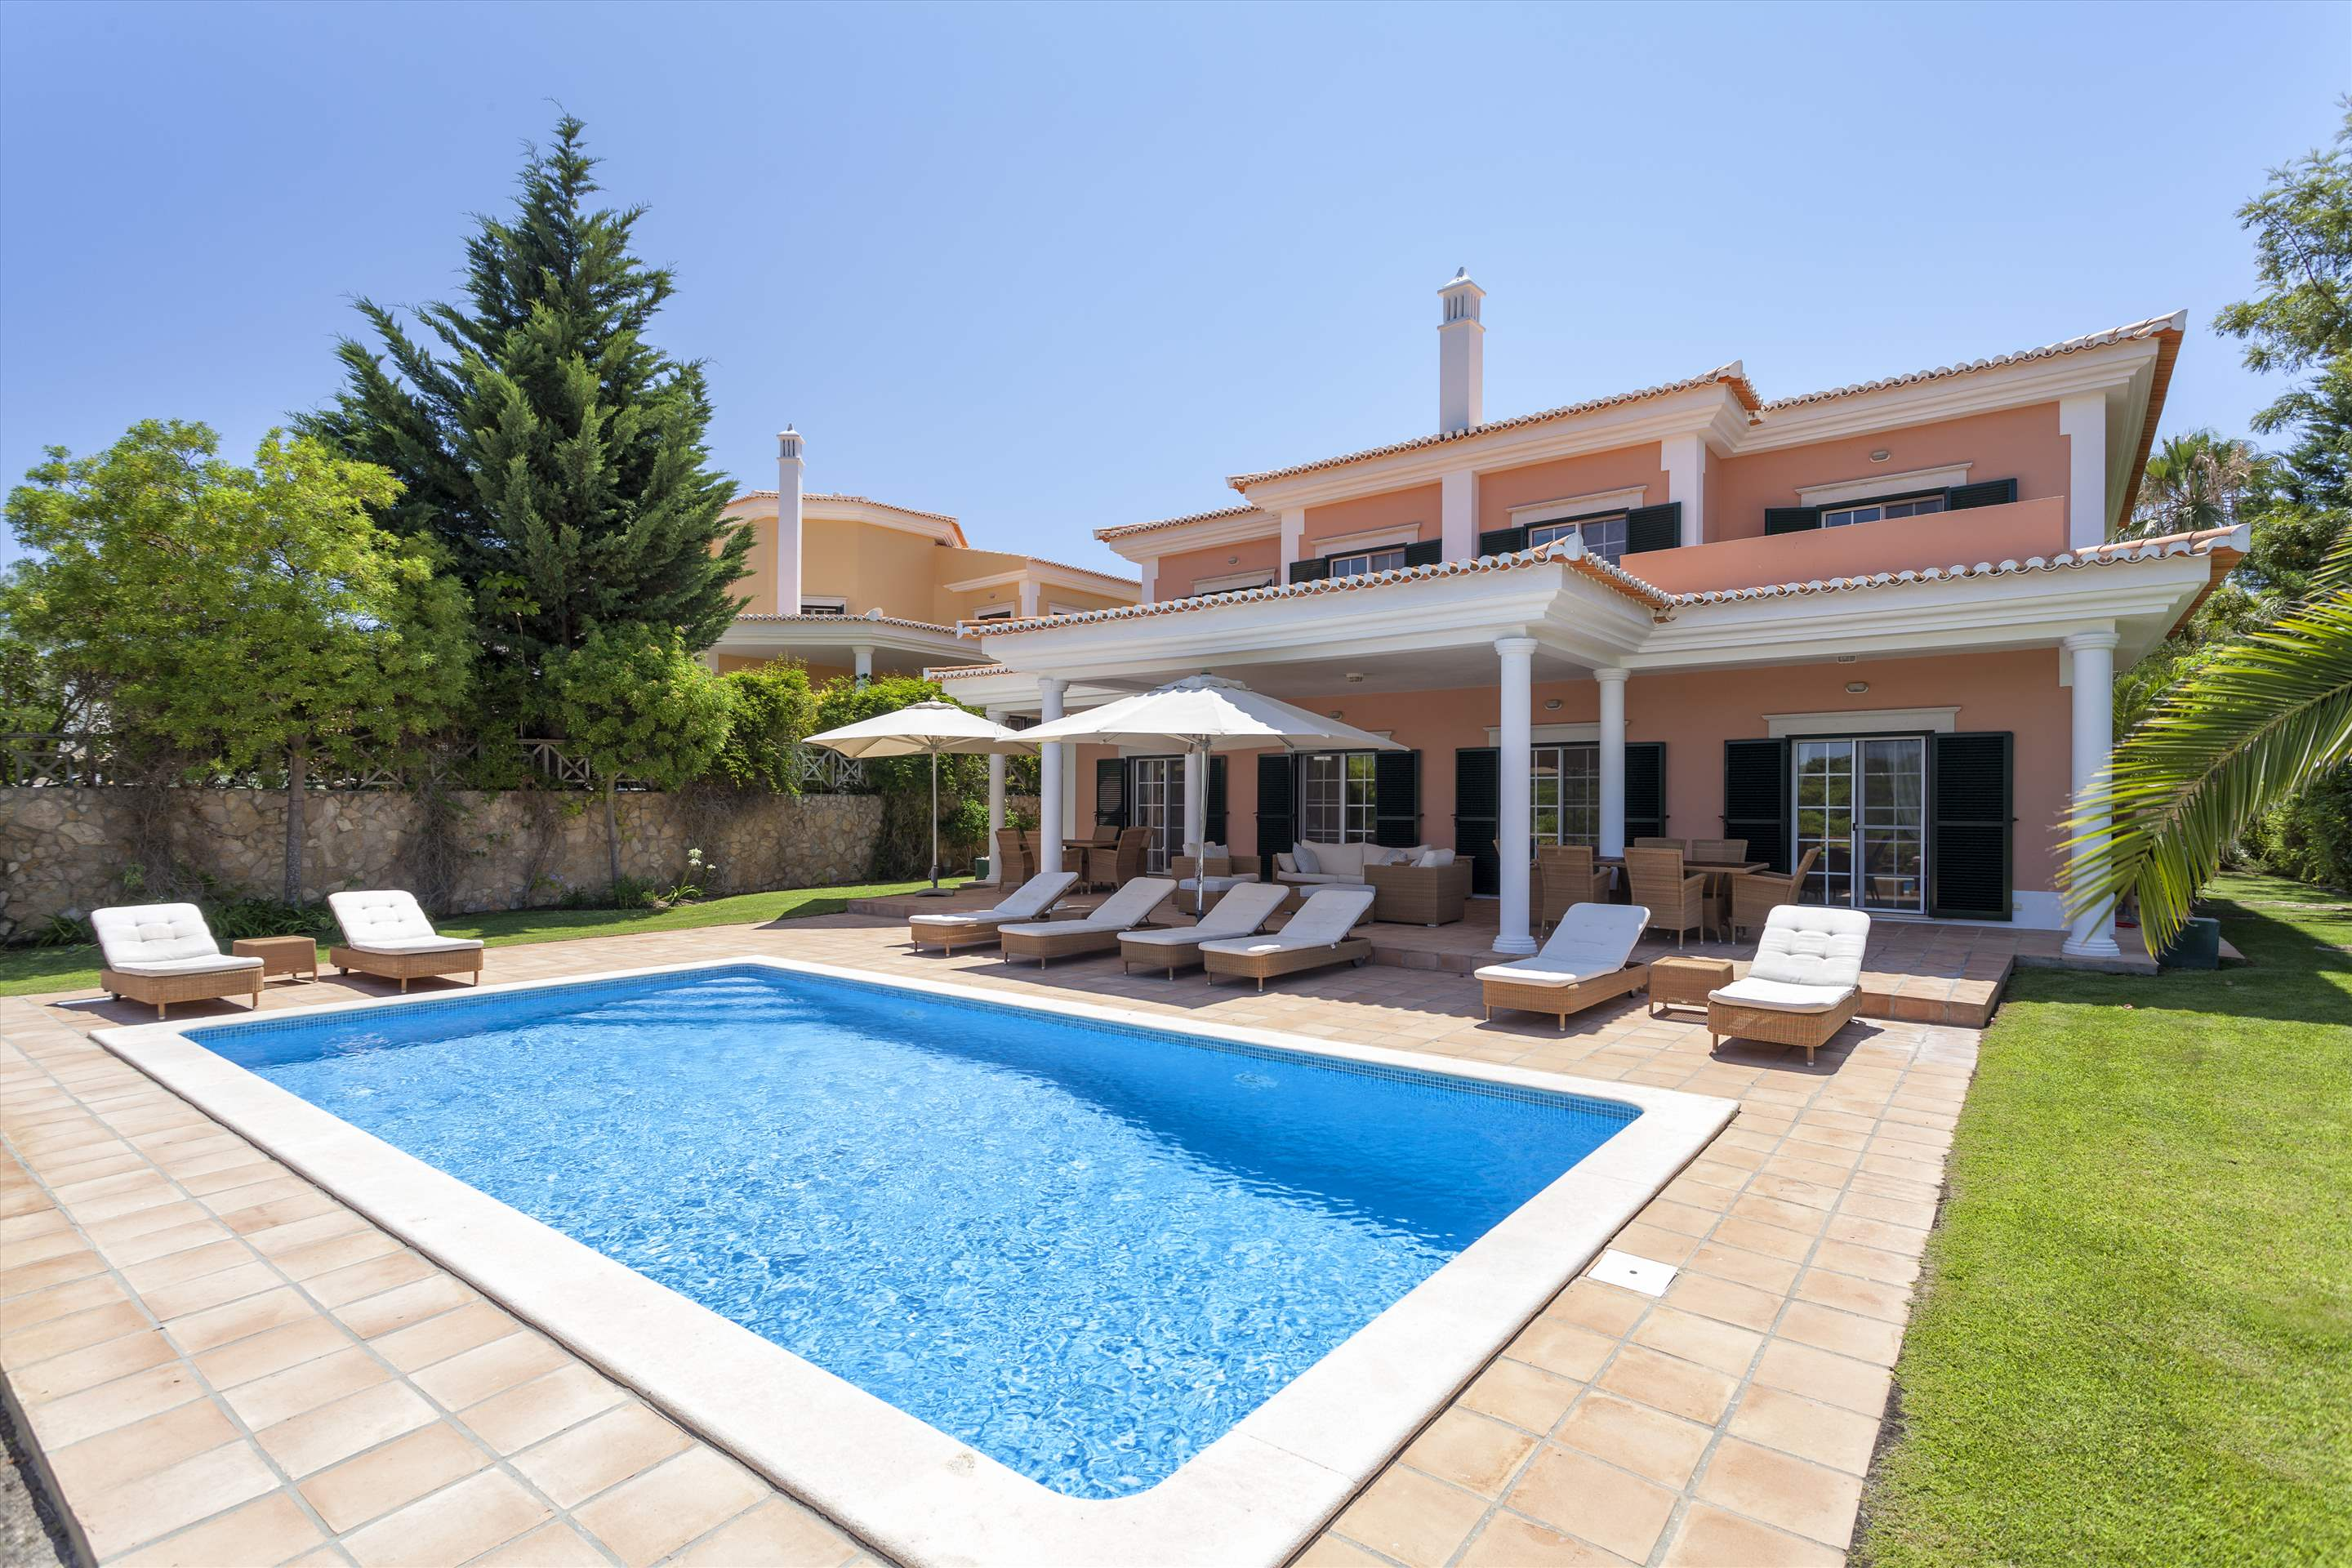 Martinhal Quinta Villa (4 Bedrooms), 4 bedroom villa in Martinhal Quinta Resort, Algarve